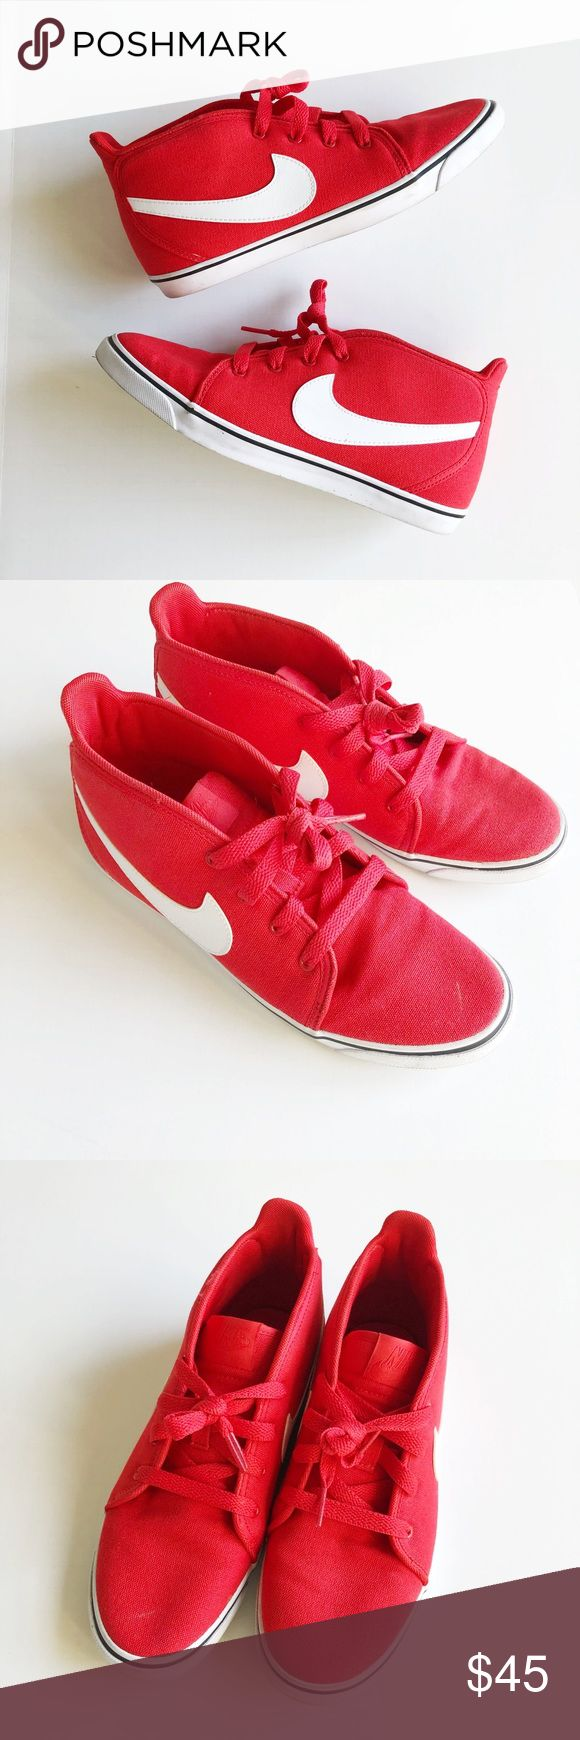 Nike Red Sneakers Red Nike mid/high top sneakers. Worn twice and in excellent condition. Women's size 7. Nike Shoes Sneakers